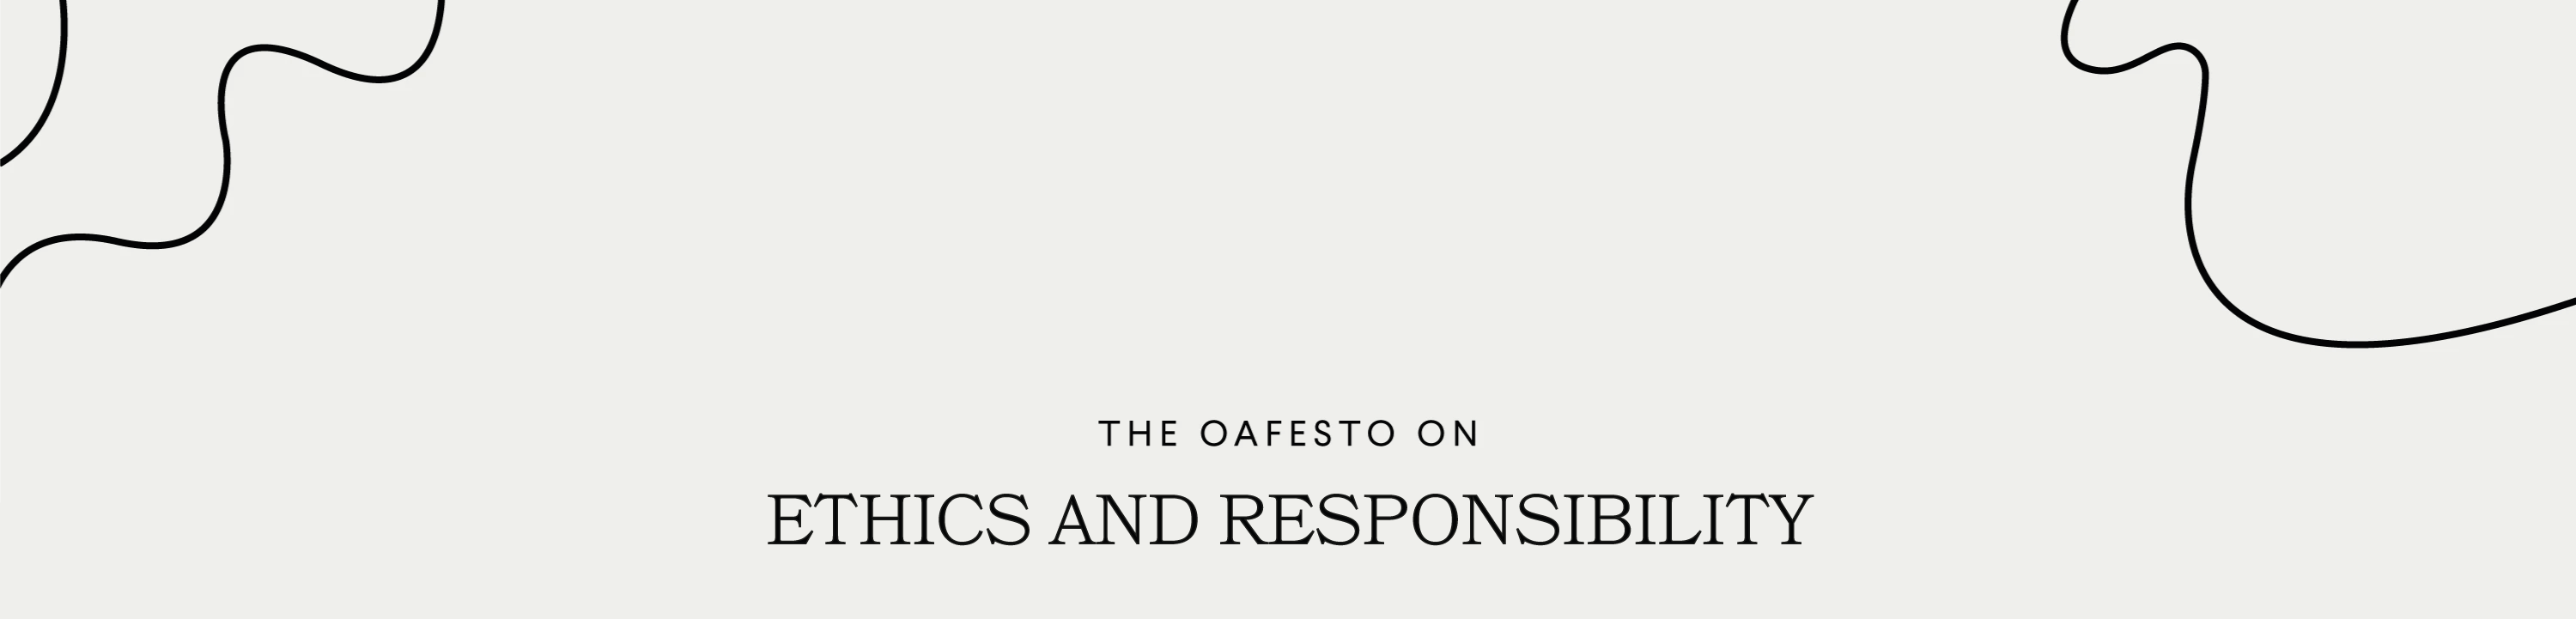 The Oafesto on Ethics and Responsibility